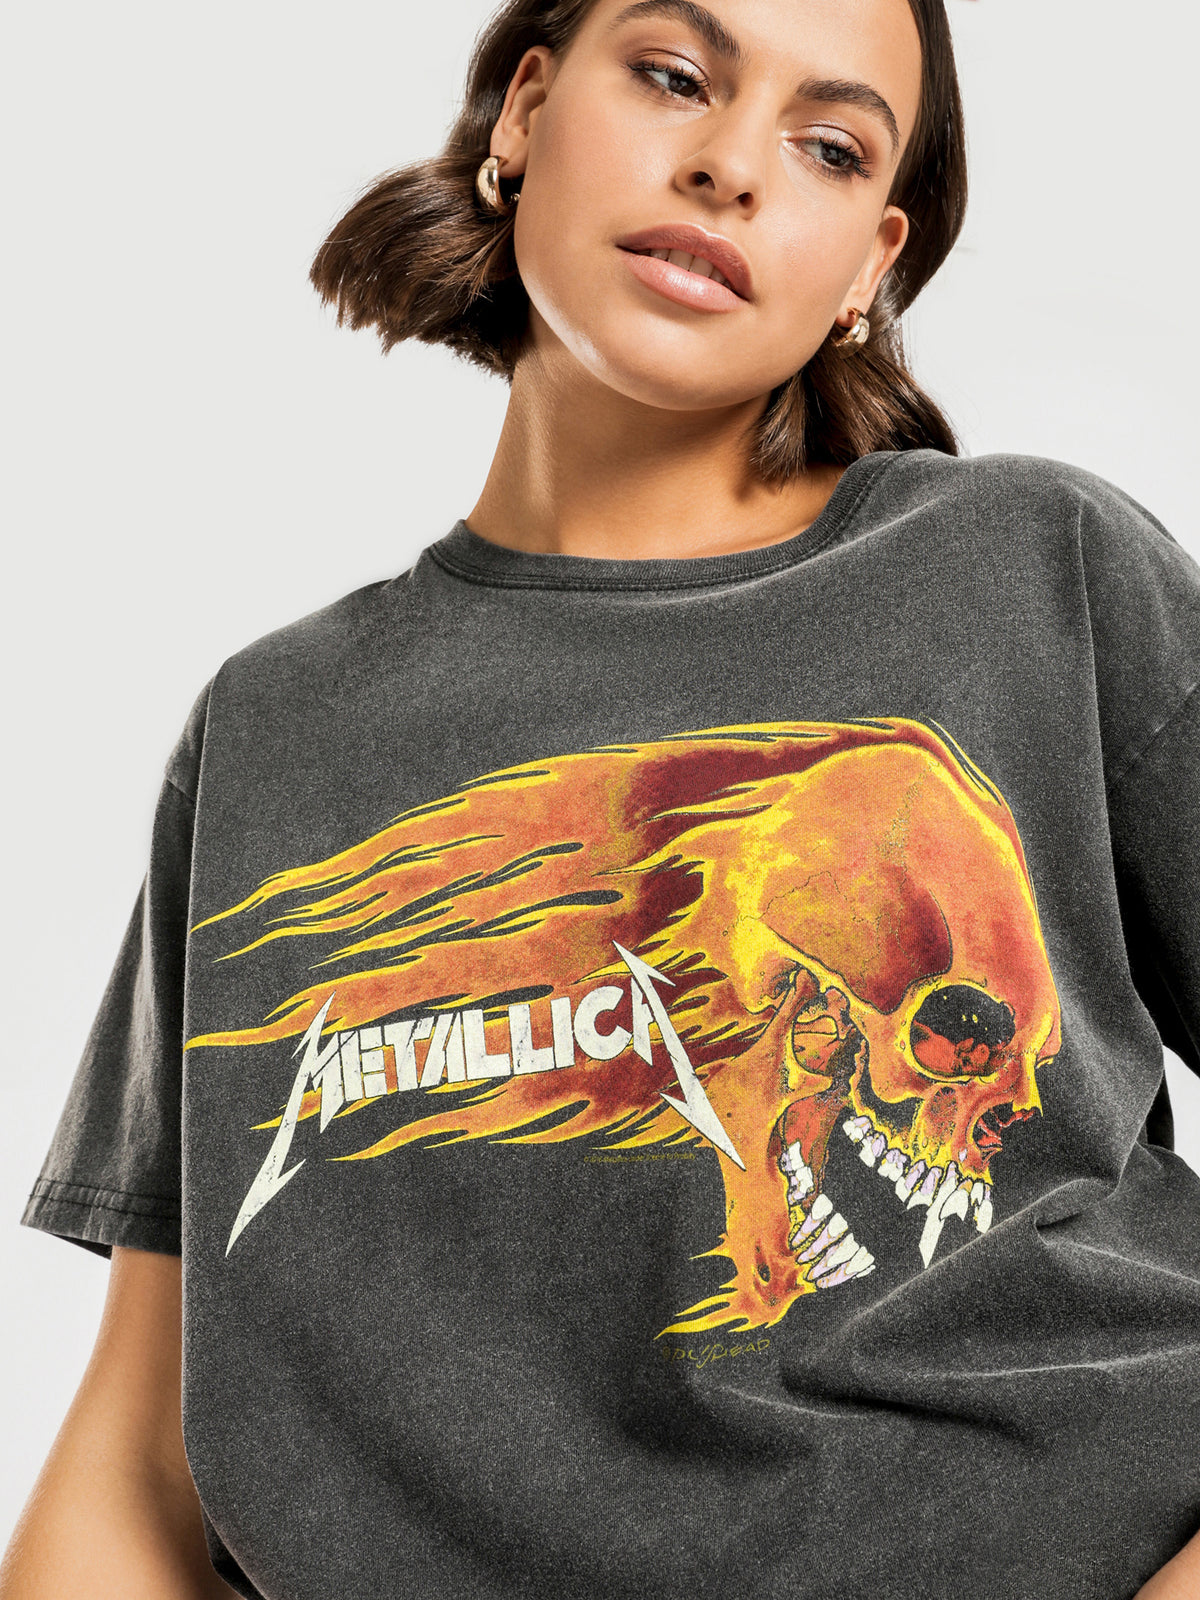 Metallica Flaming Skull T-Shirt in Washed Black